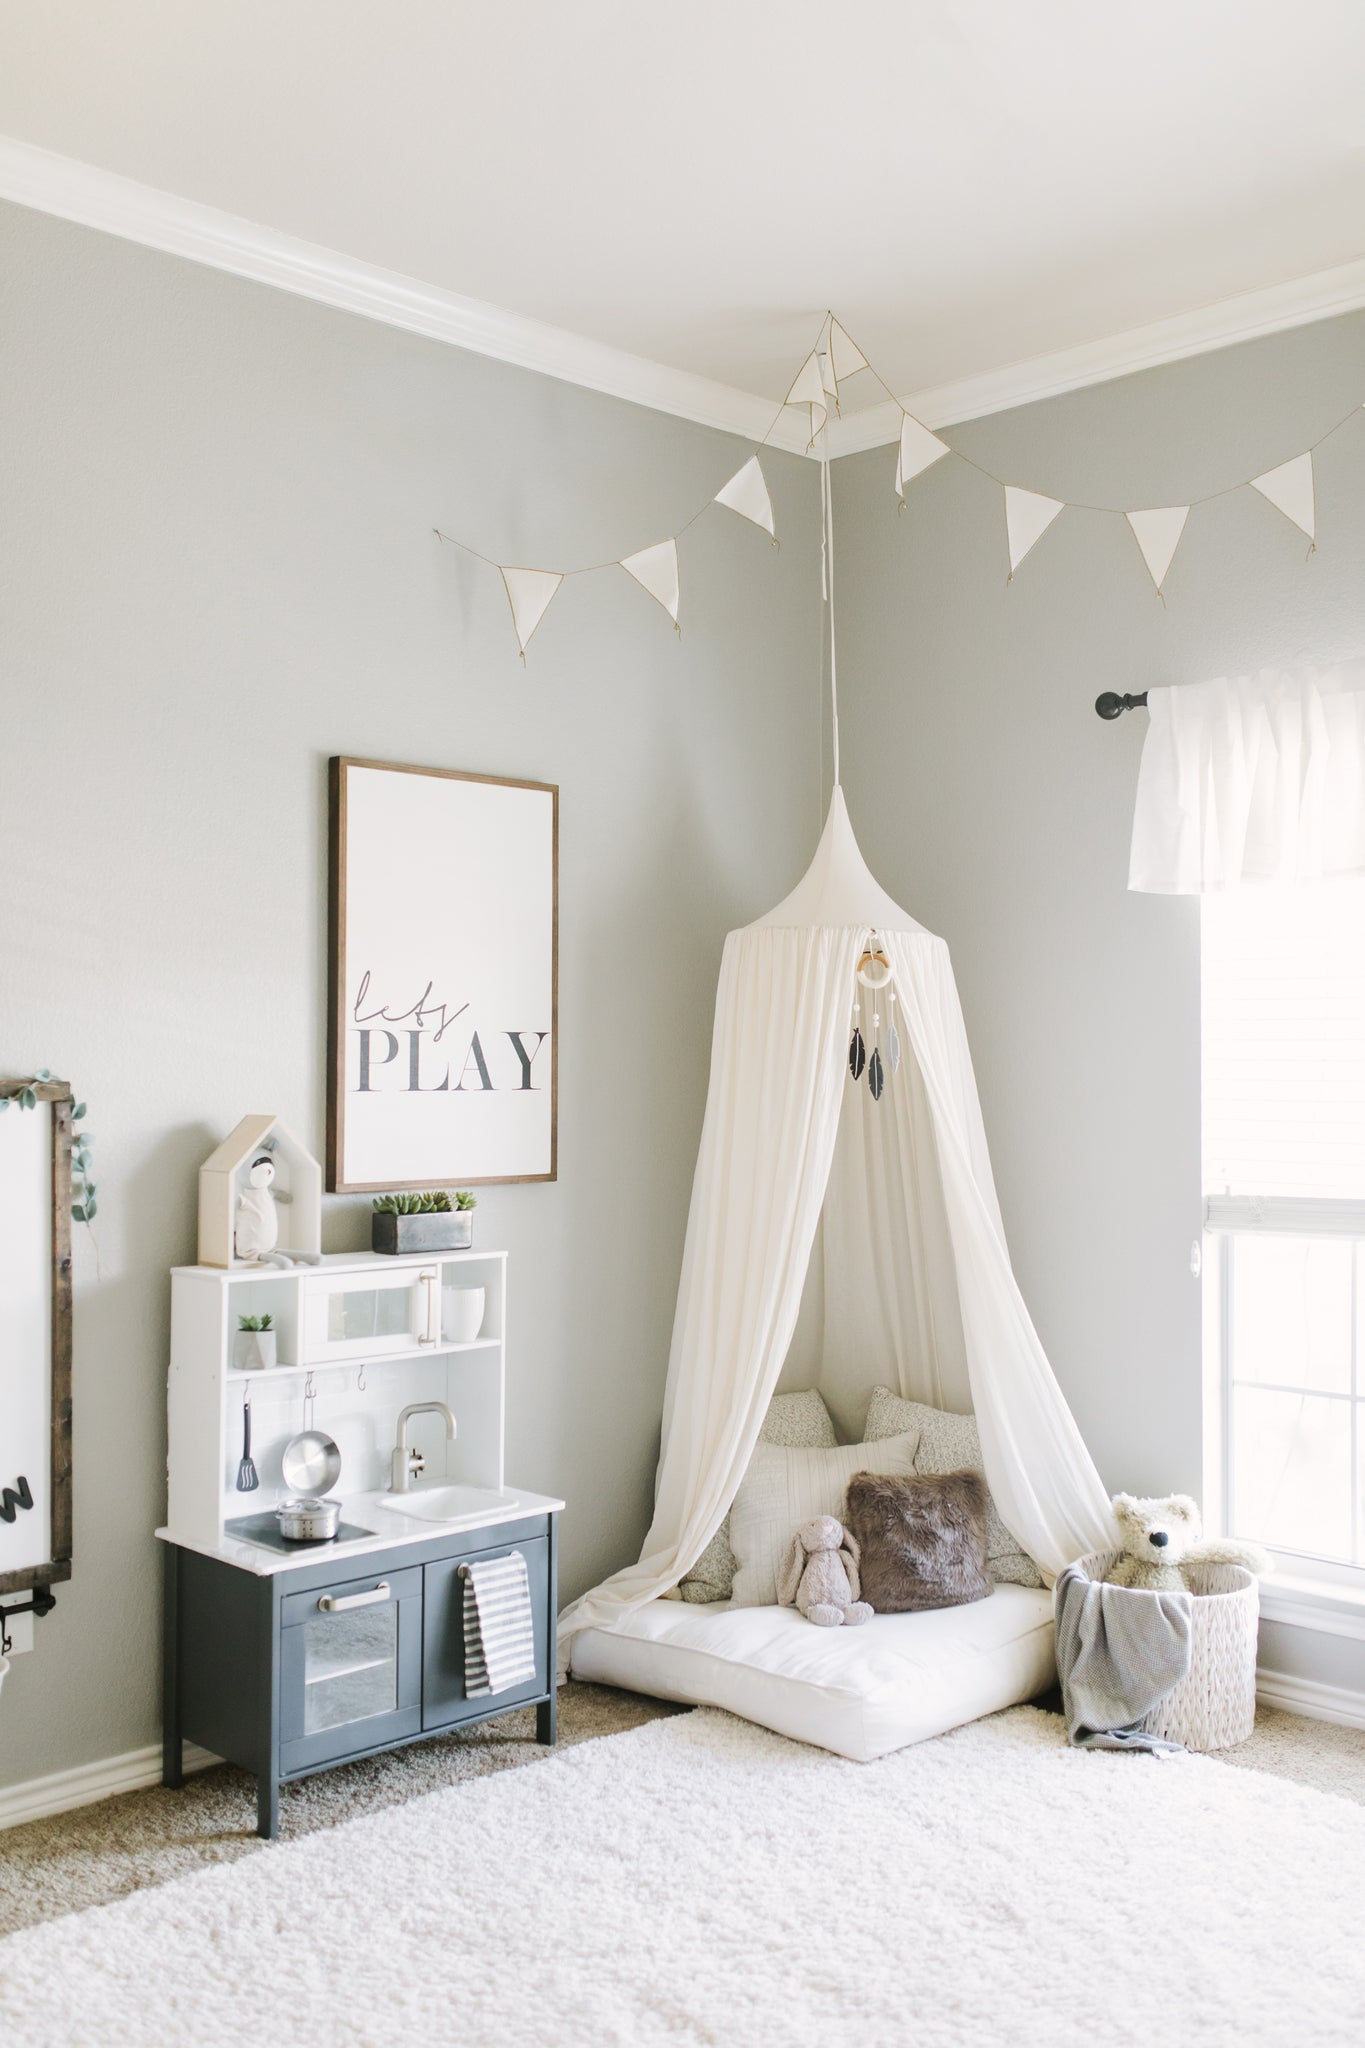 Interior design, kids bedrooms, fun in details